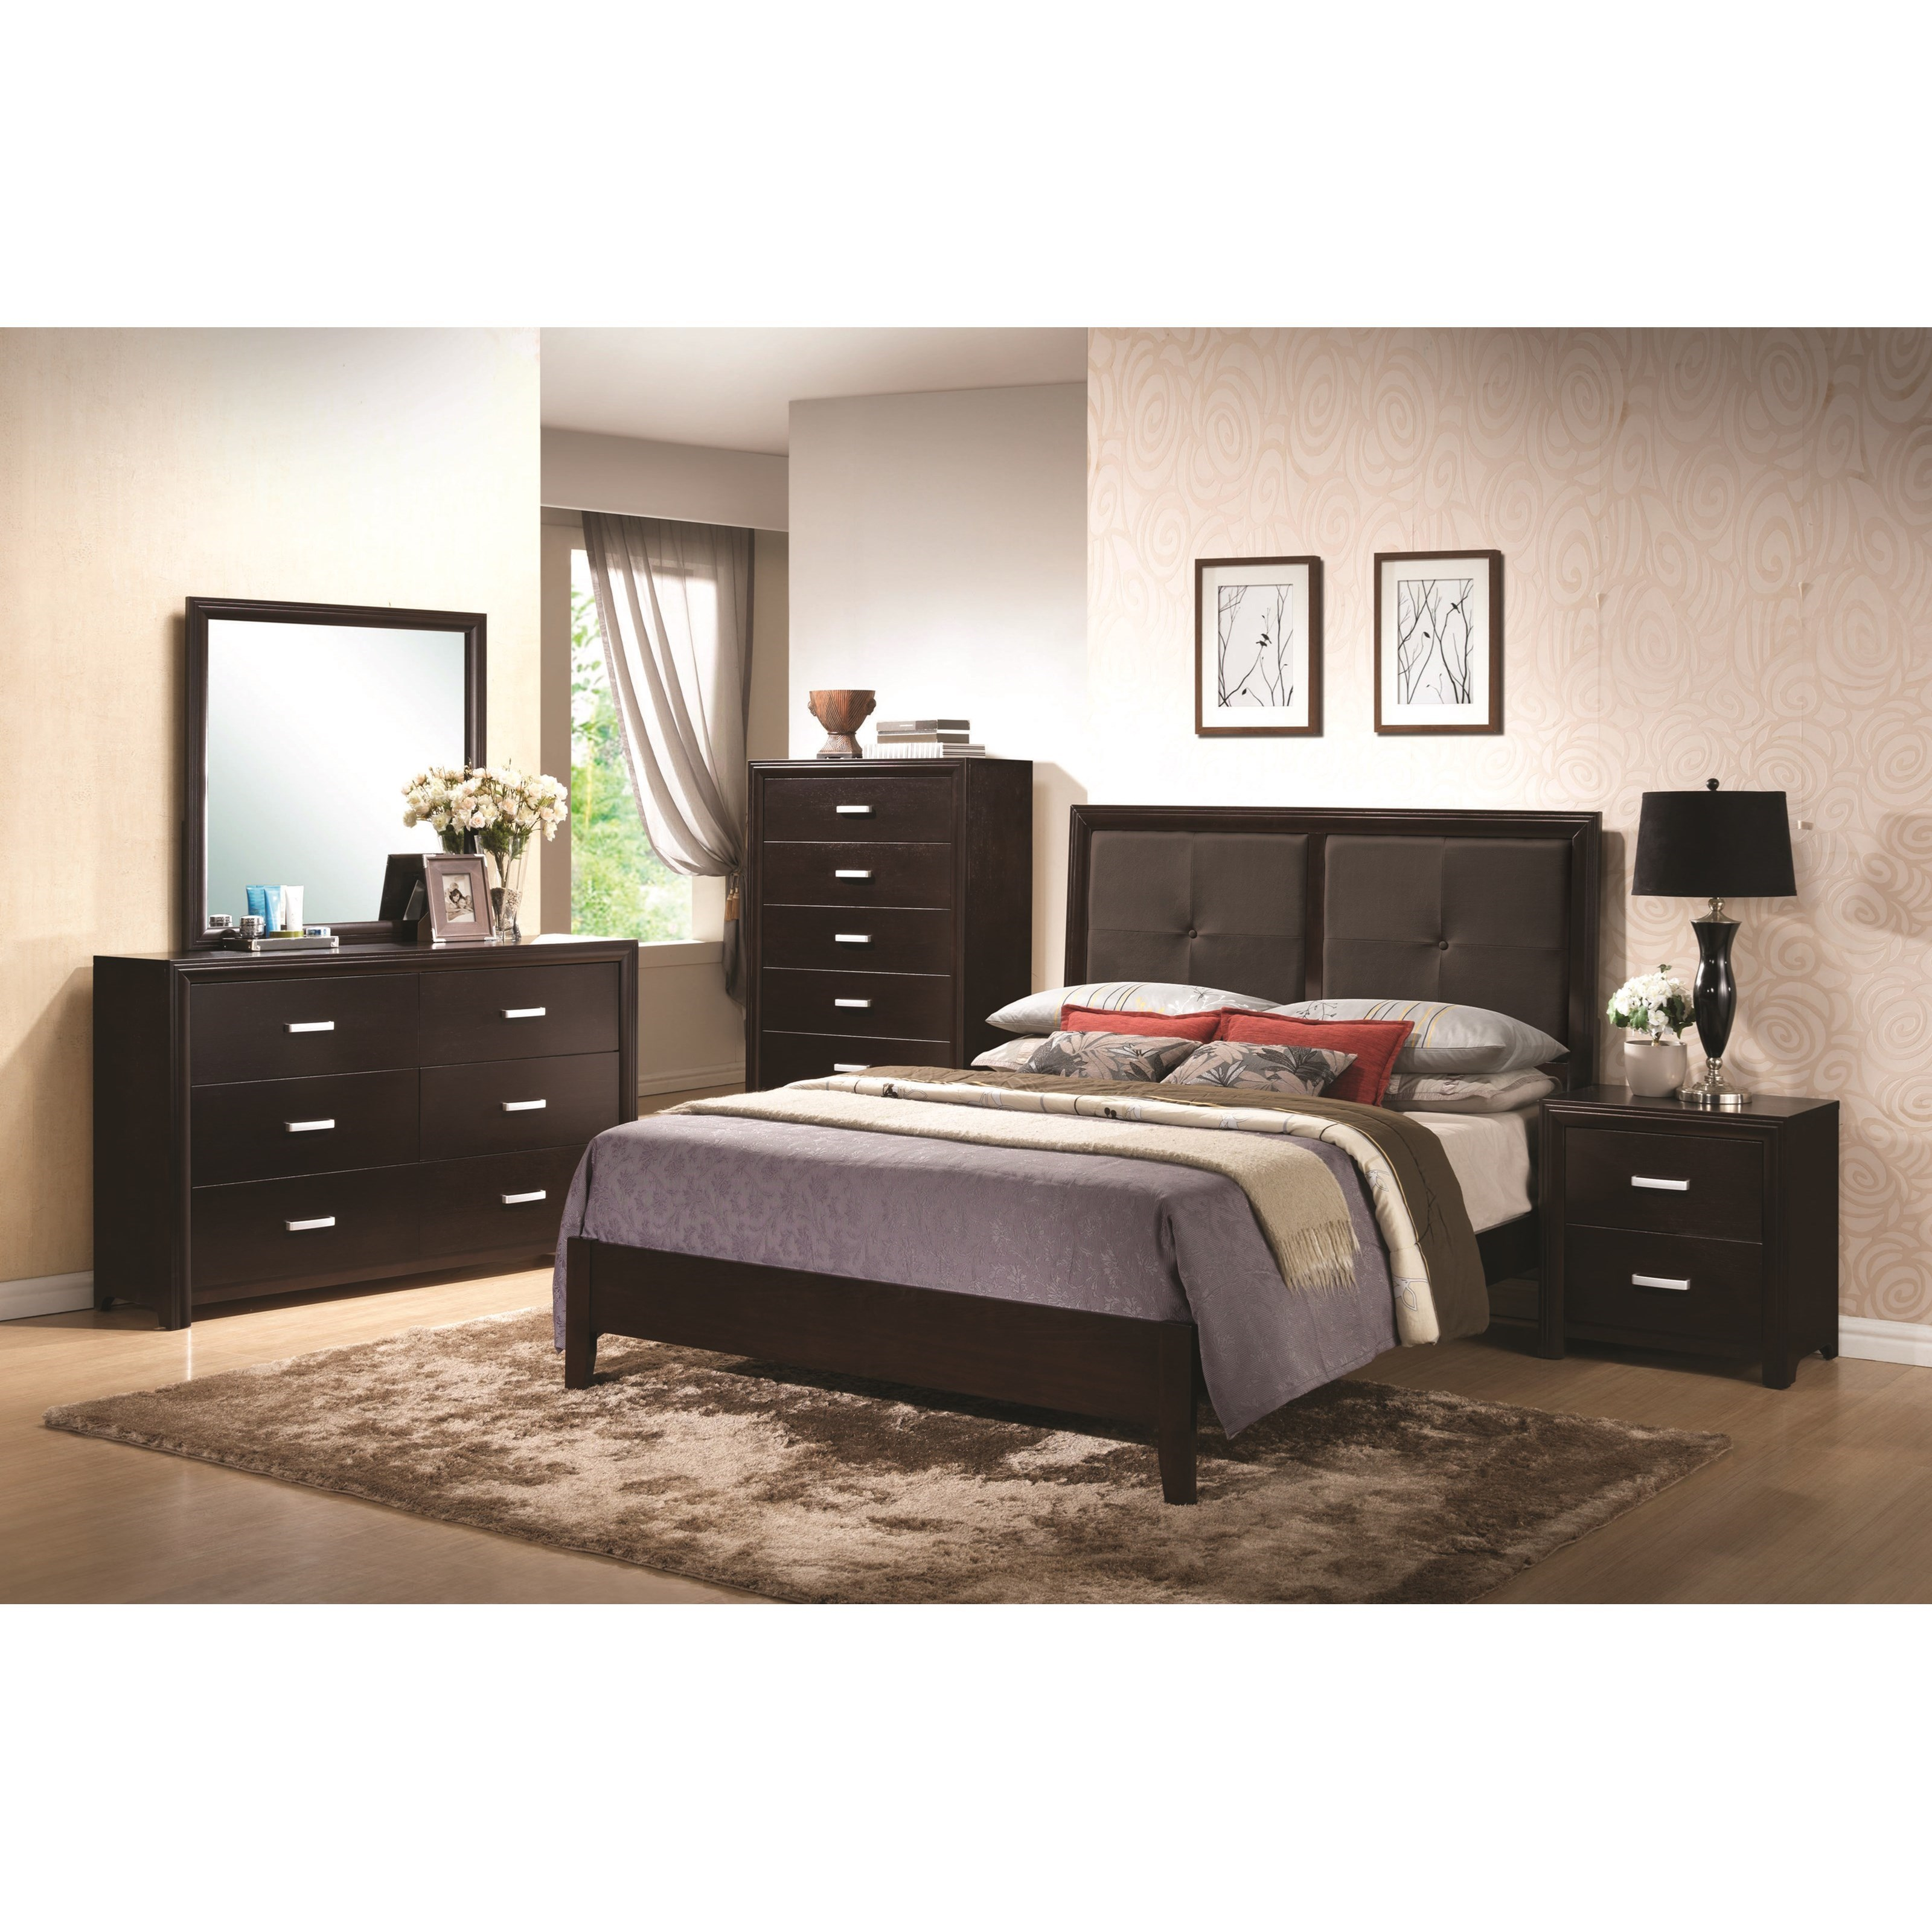 Coaster Andreas Queen Bedroom Group  - Item Number: 202470 Q Bedroom Group 1